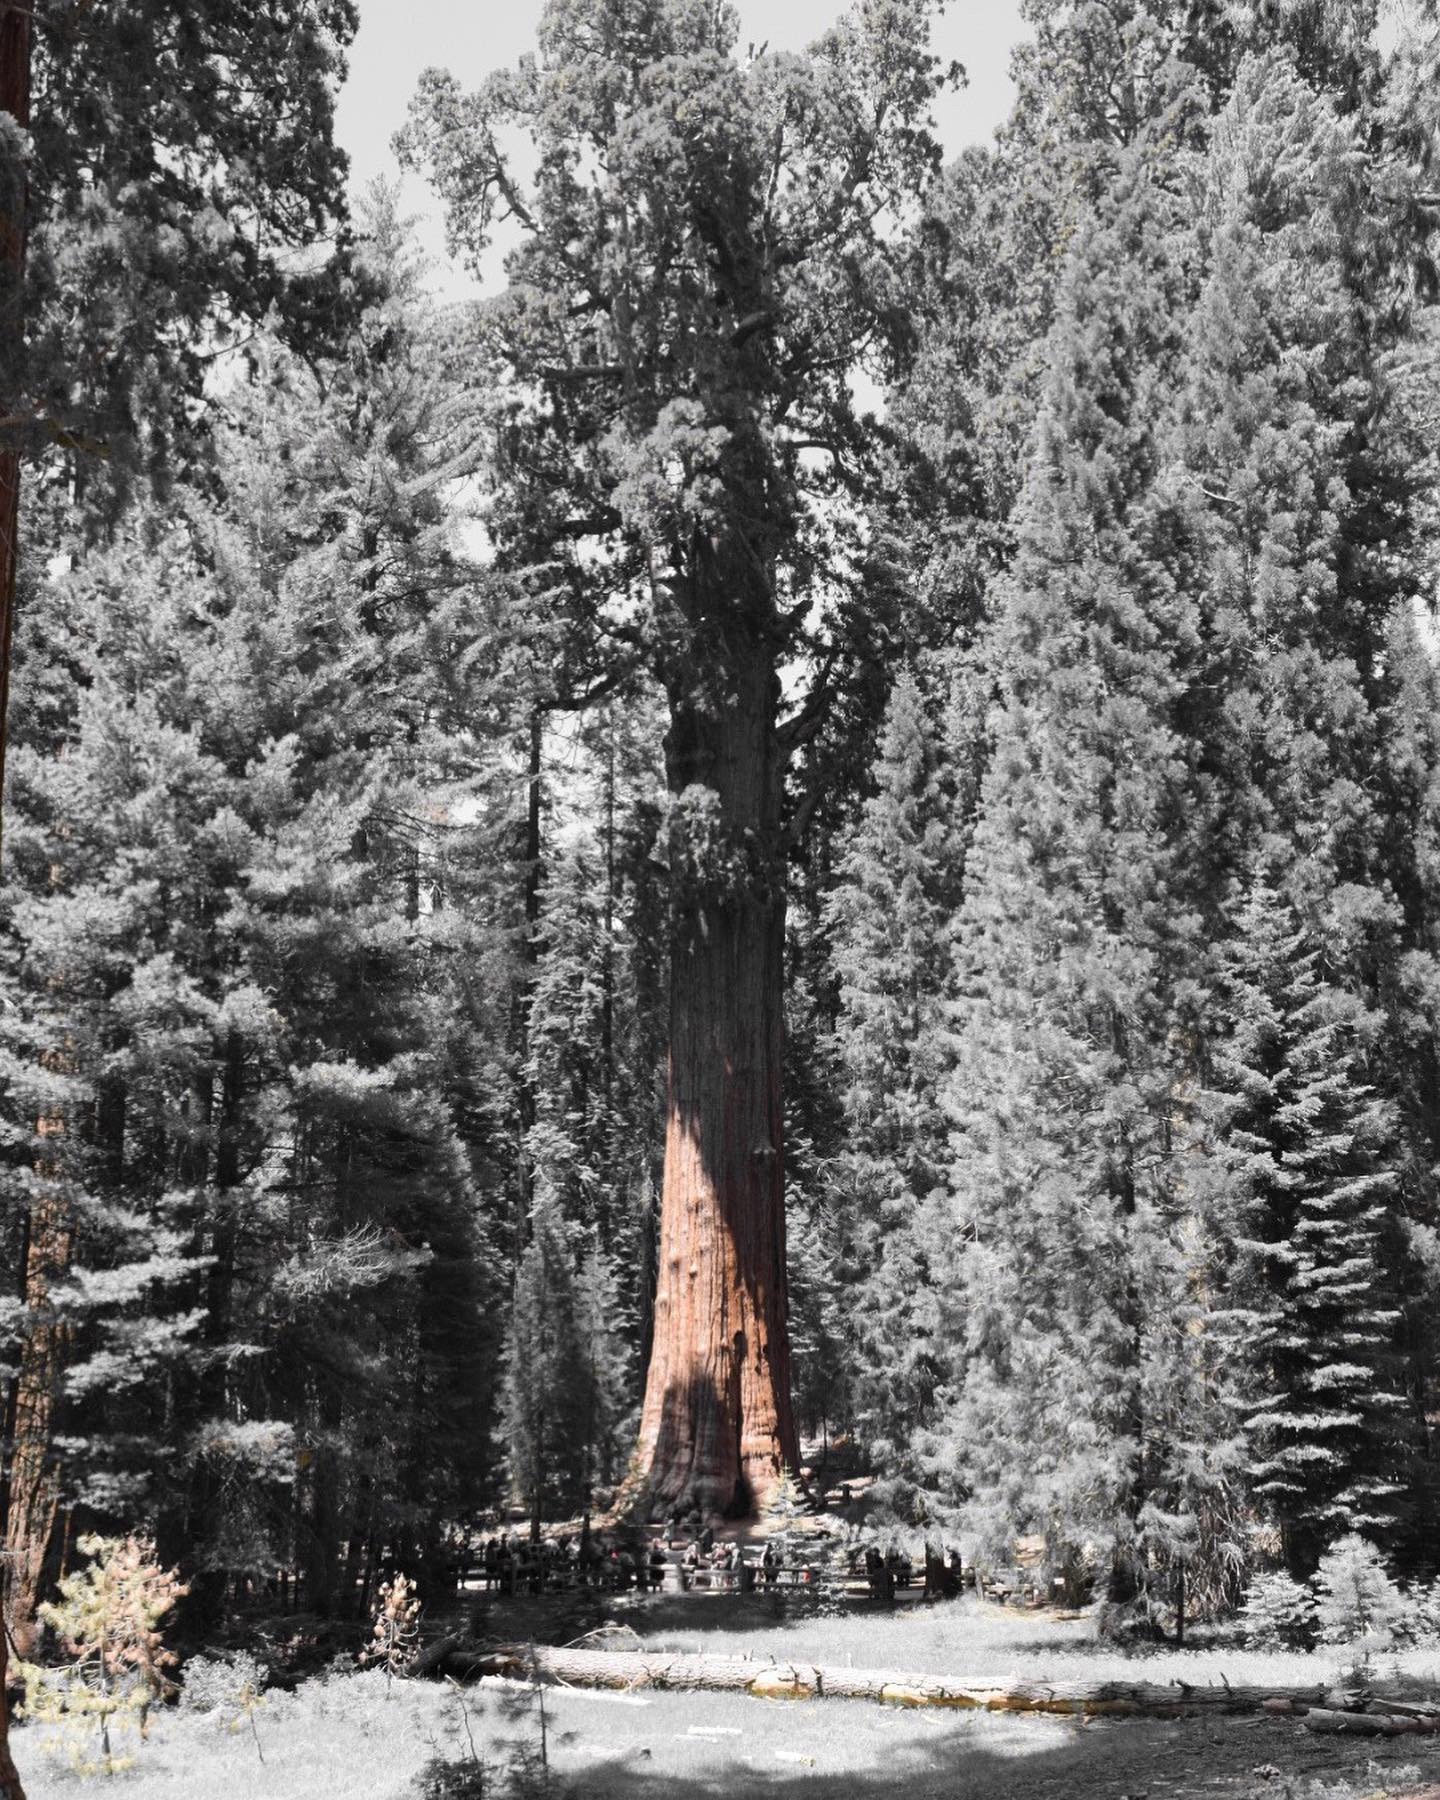 Ladies and Gentlement, may I present the largest living thing on earth. The General Sherman Tree.